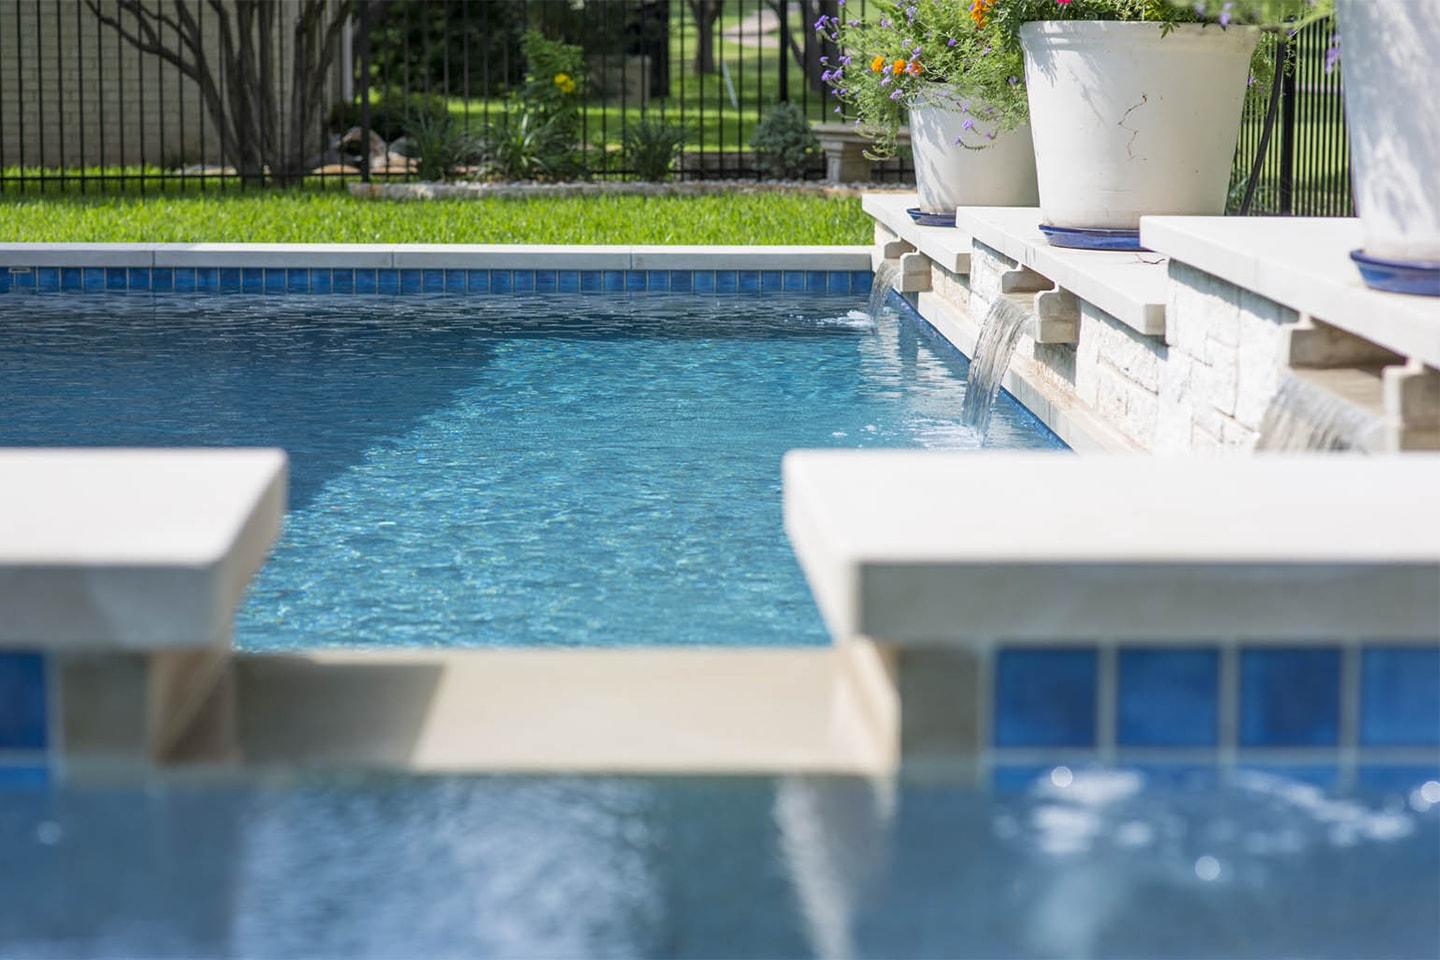 New pool designs visit our pool design showroom get a for Pool design hamilton